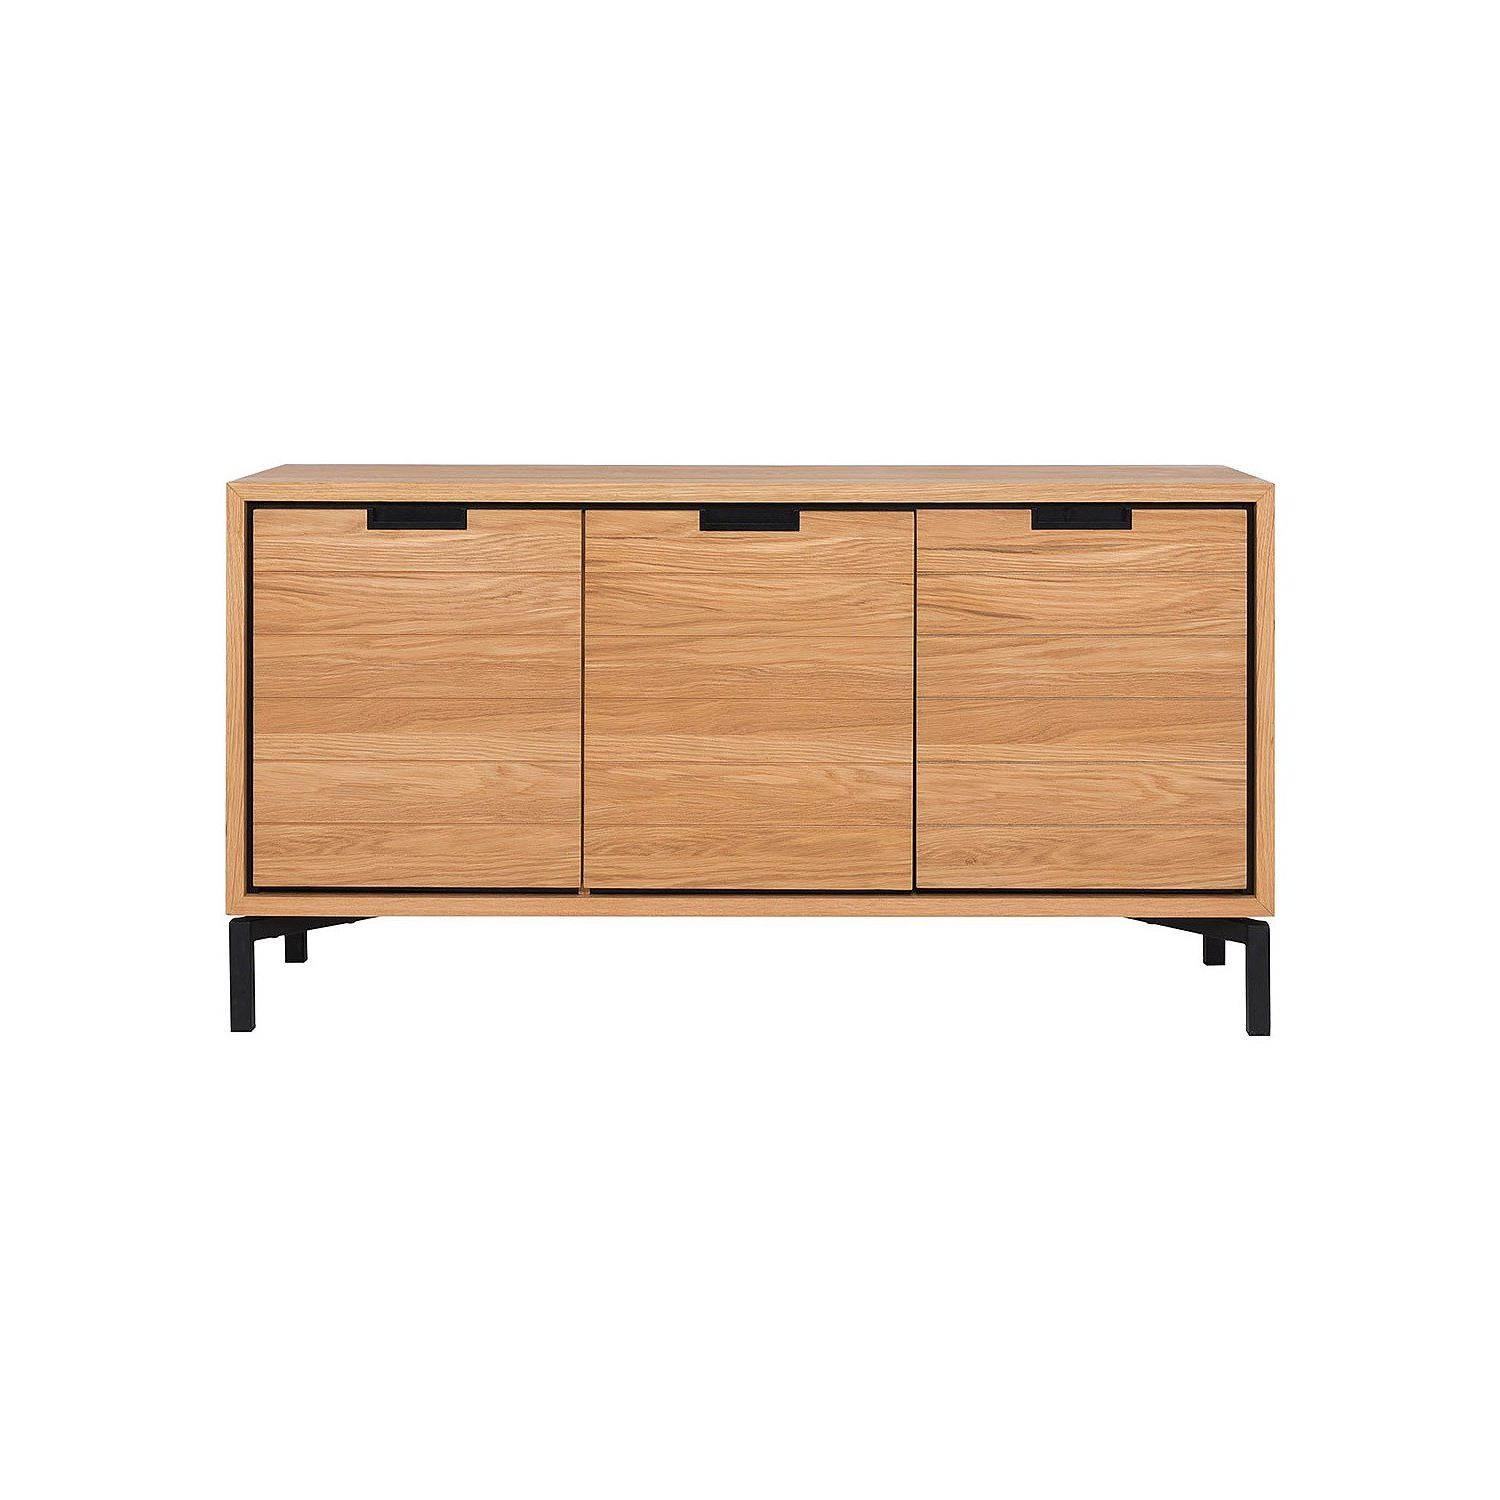 Buffets Atelier Buffet 3 Door 1 Drawer Extra Long Sideboard With Palisade Sideboards (View 20 of 20)